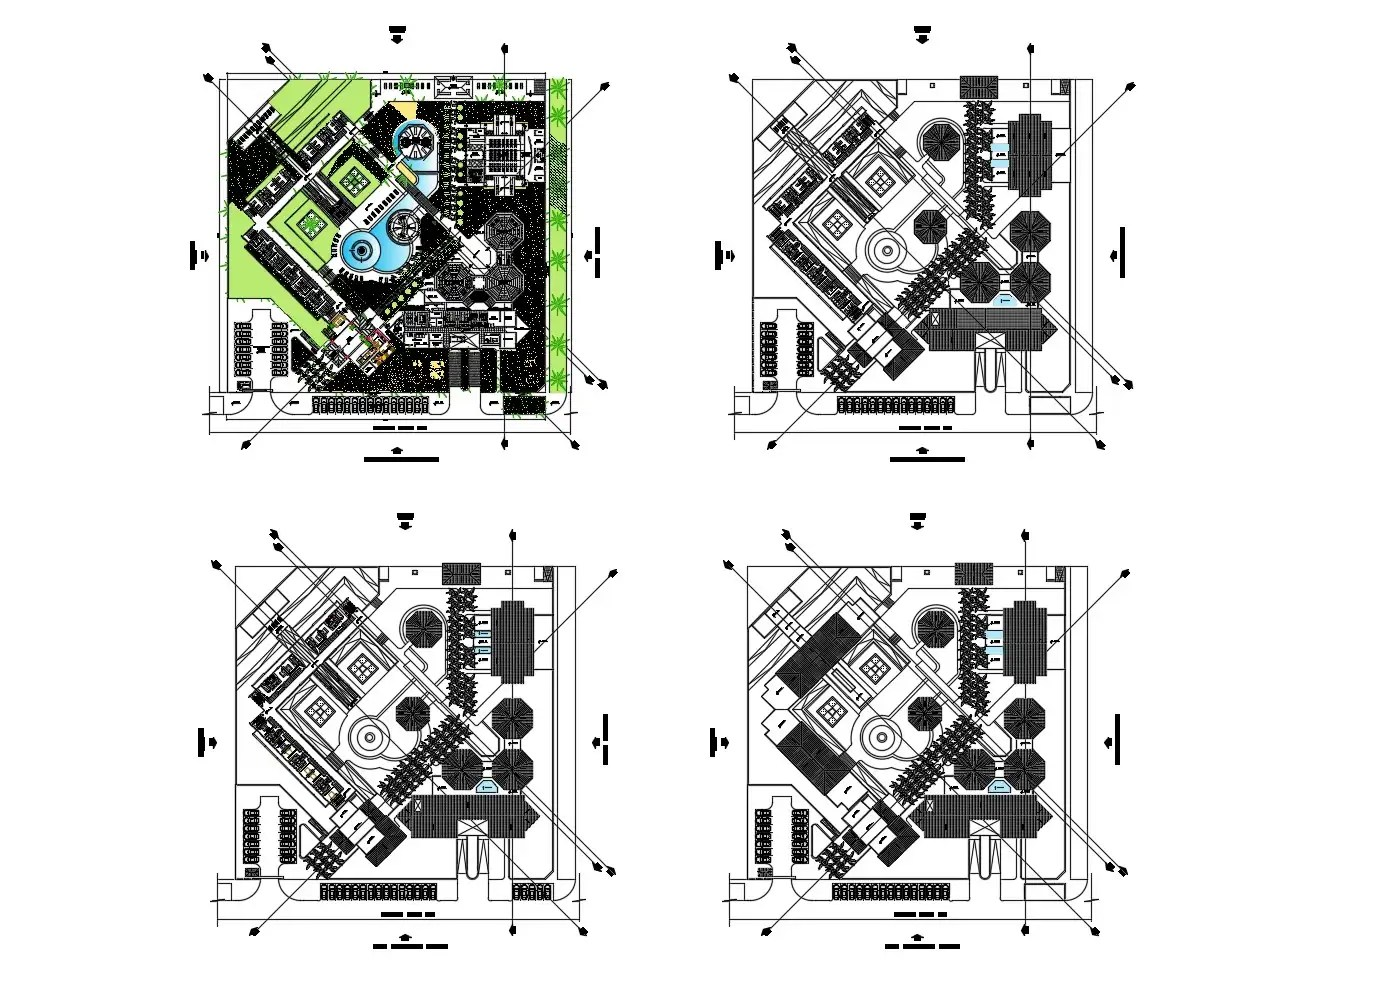 Architectural plan of hotel building 102.10mtr x 100.46mtr